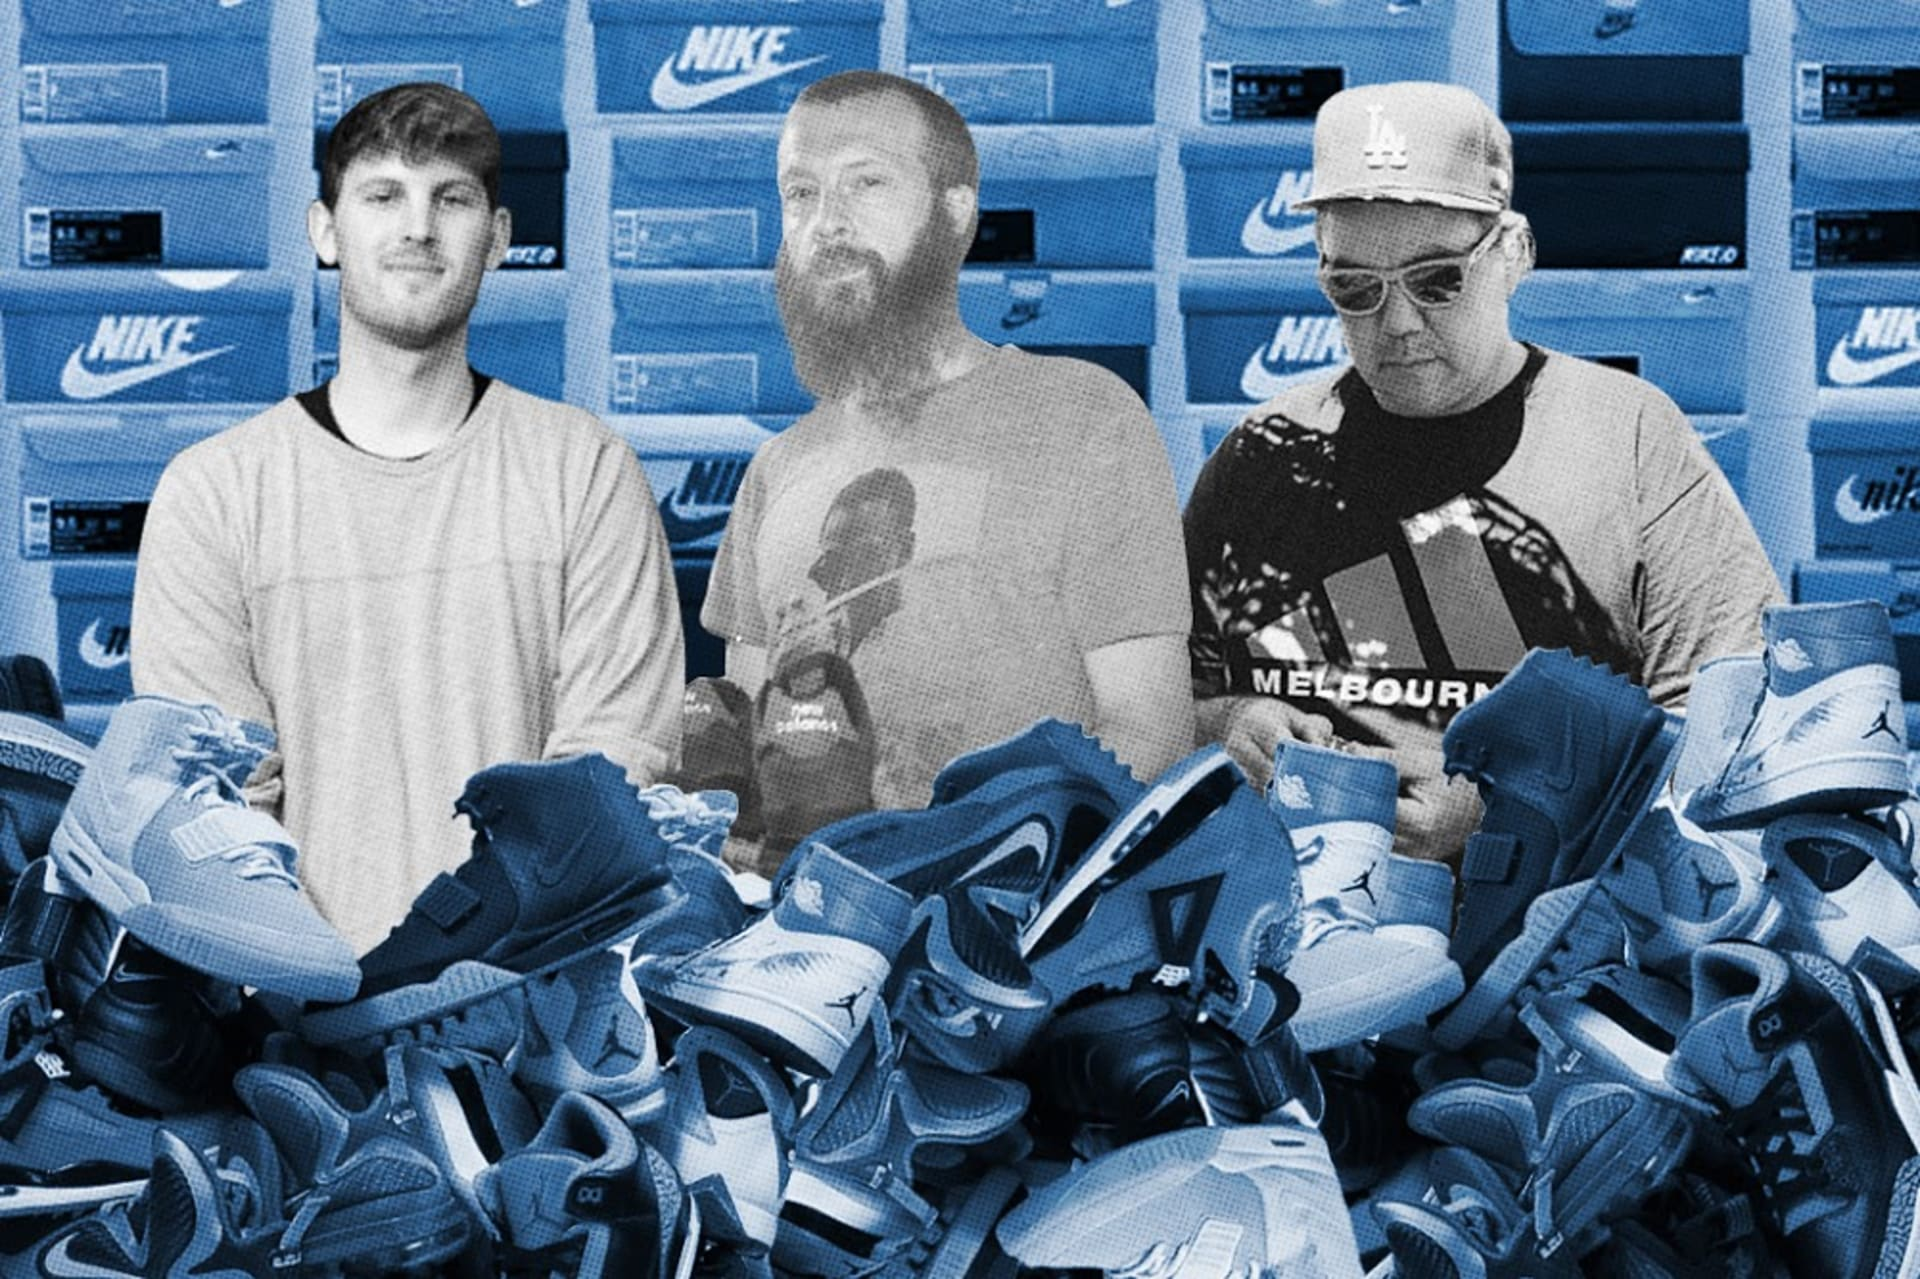 2c9989c1 15 Most Influential People in Sneaker Media Right Now | Complex